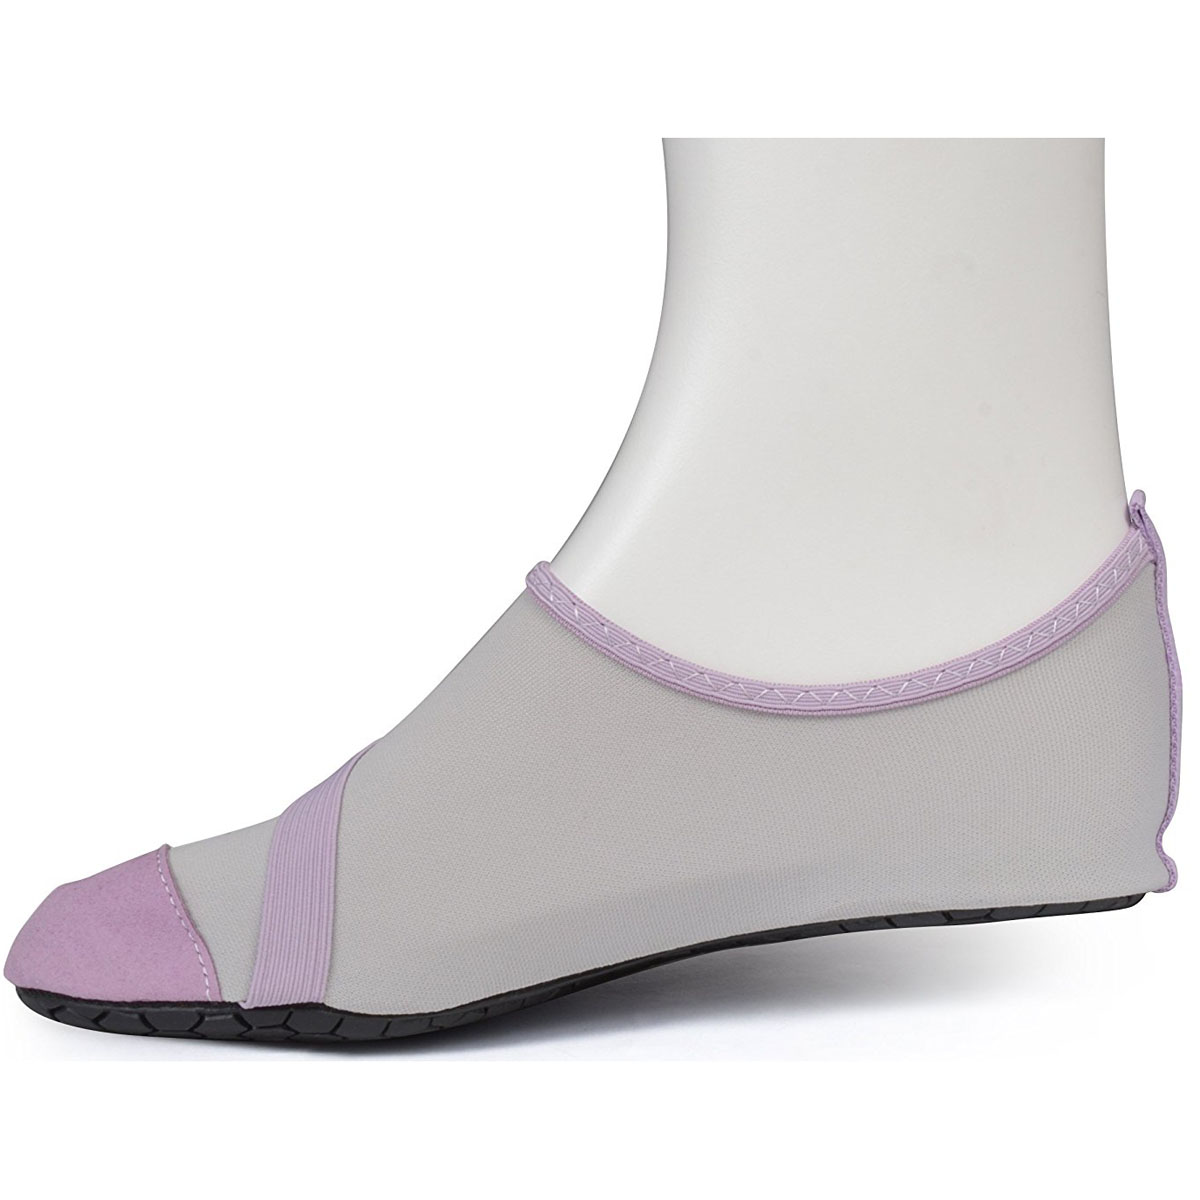 Fitkicks Women S Shoes